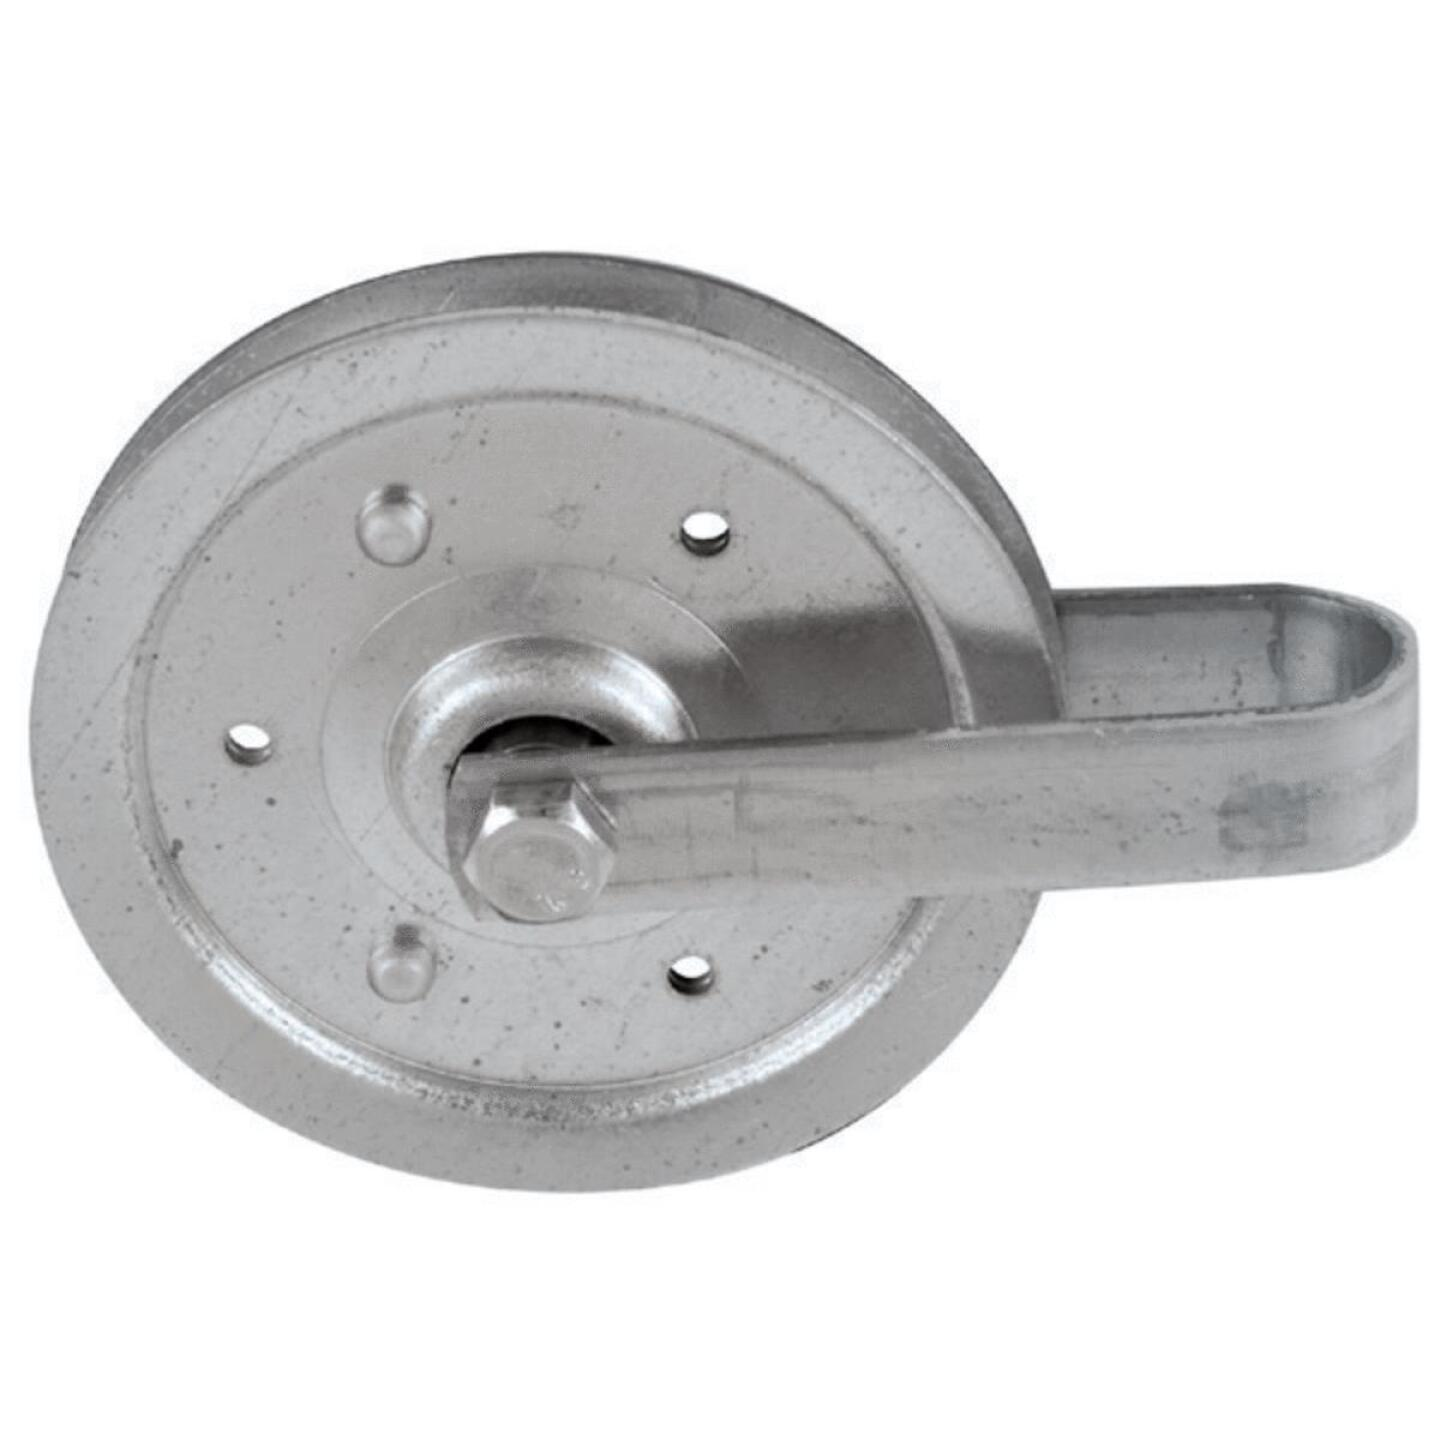 National 4 In. 2-Car Garage Door Pulley Image 3